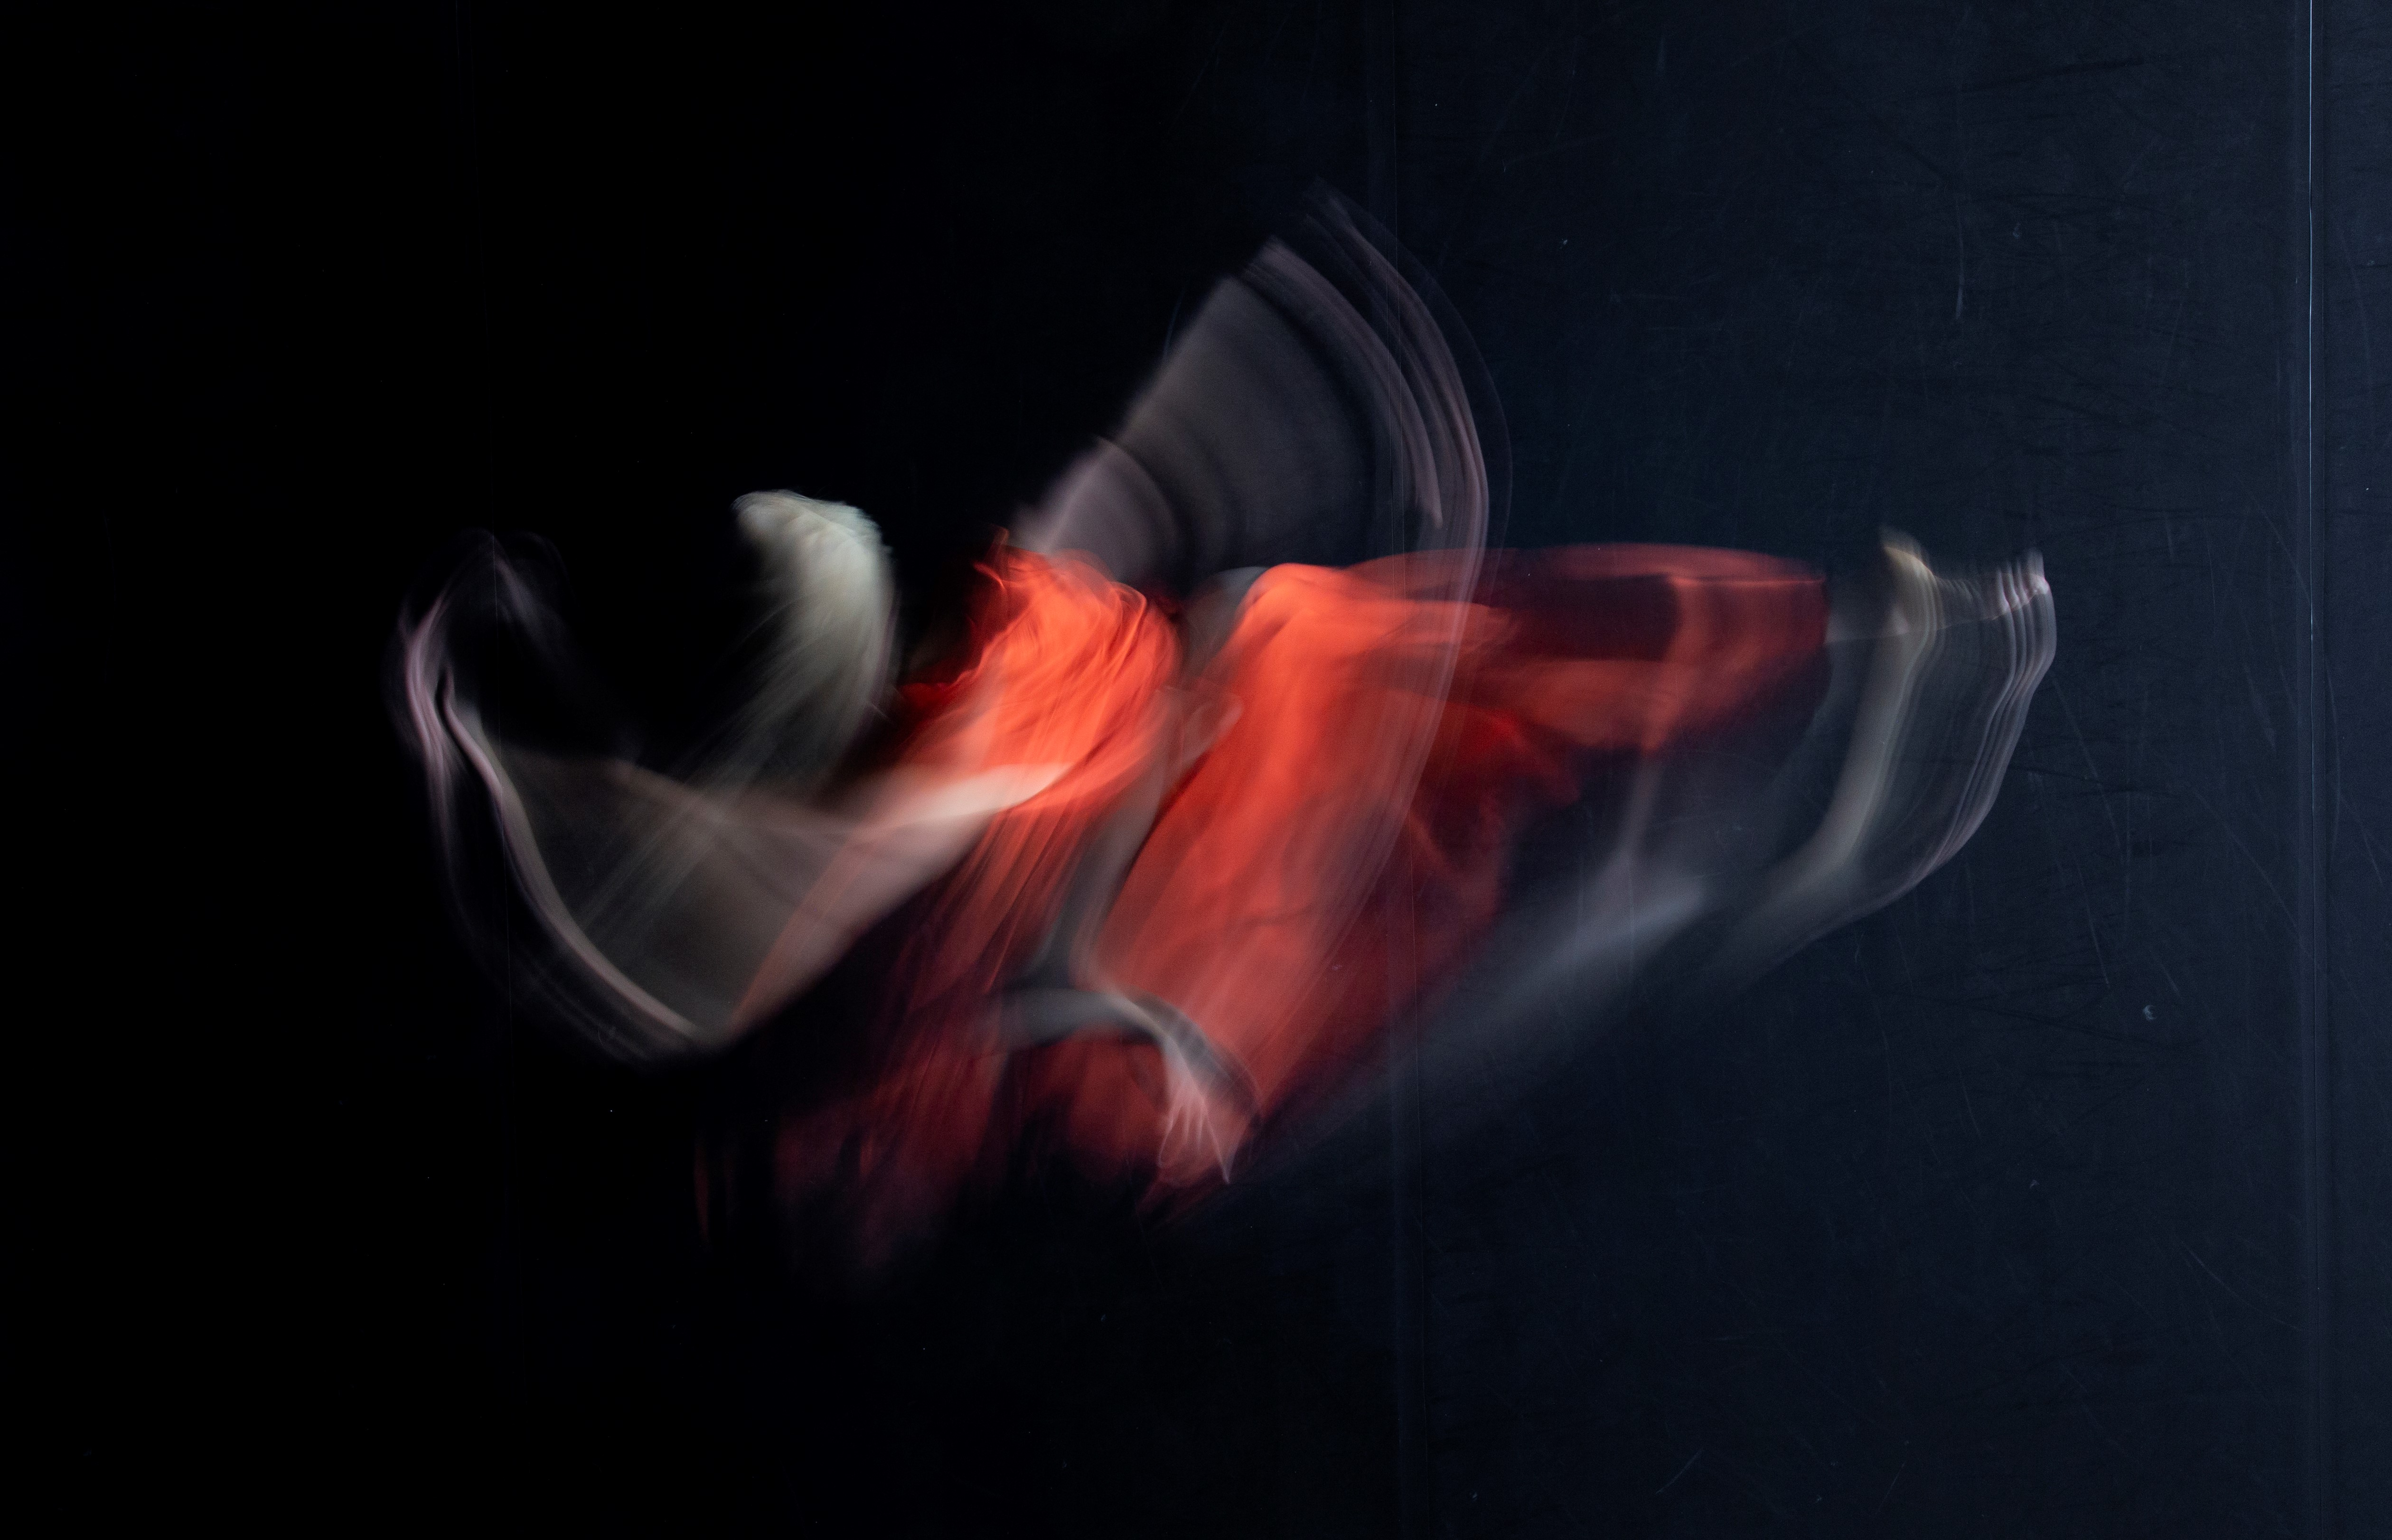 A long exposure of a dancer in a red dress with a black background. The long exposure results in the figure being almost unrecognisable, it is mostly just a blur.